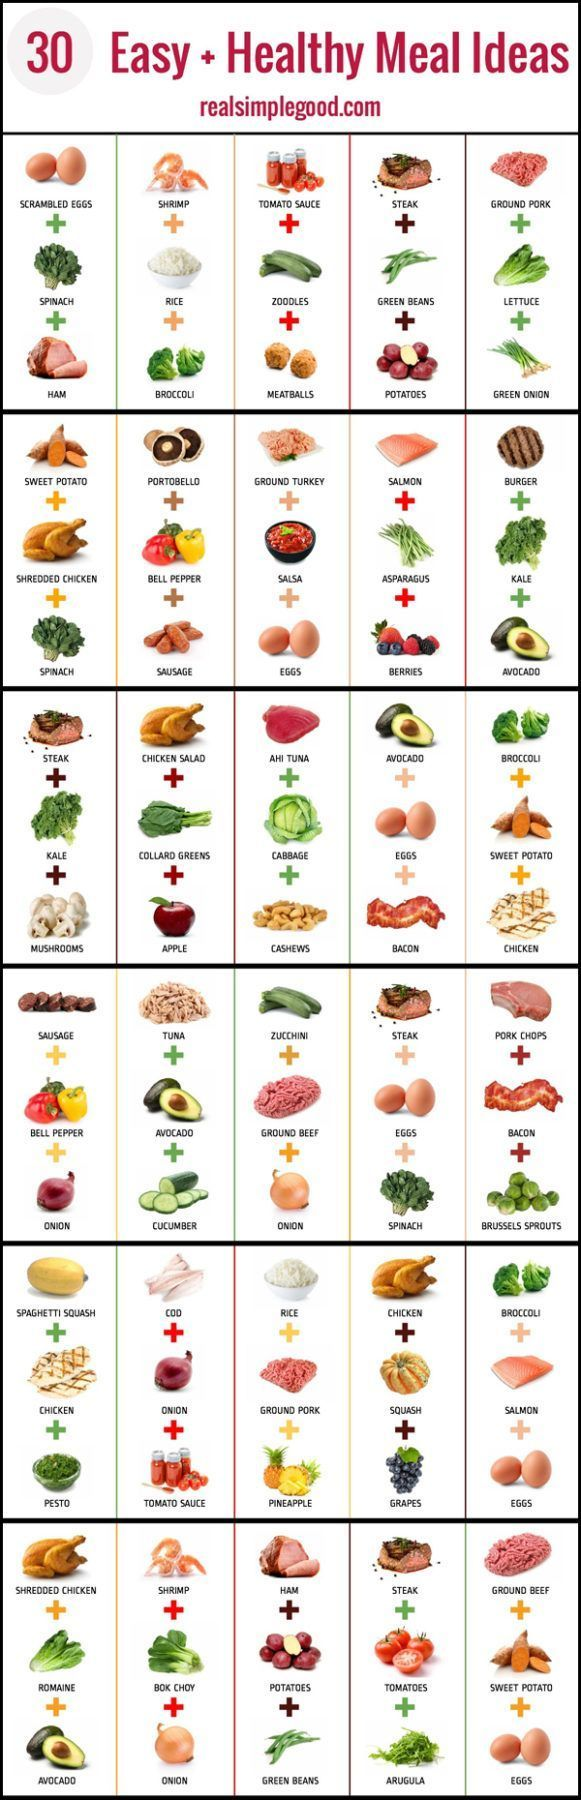 Our infographic of 30 easy and healthy meal ideas will give you inspiration when you are looking for a quick and easy meal. Easy ideas for healthy meals with real food. Paleo, Gluten-Free, Dairy-Free, Sugar-Free.   realsimplegood.com